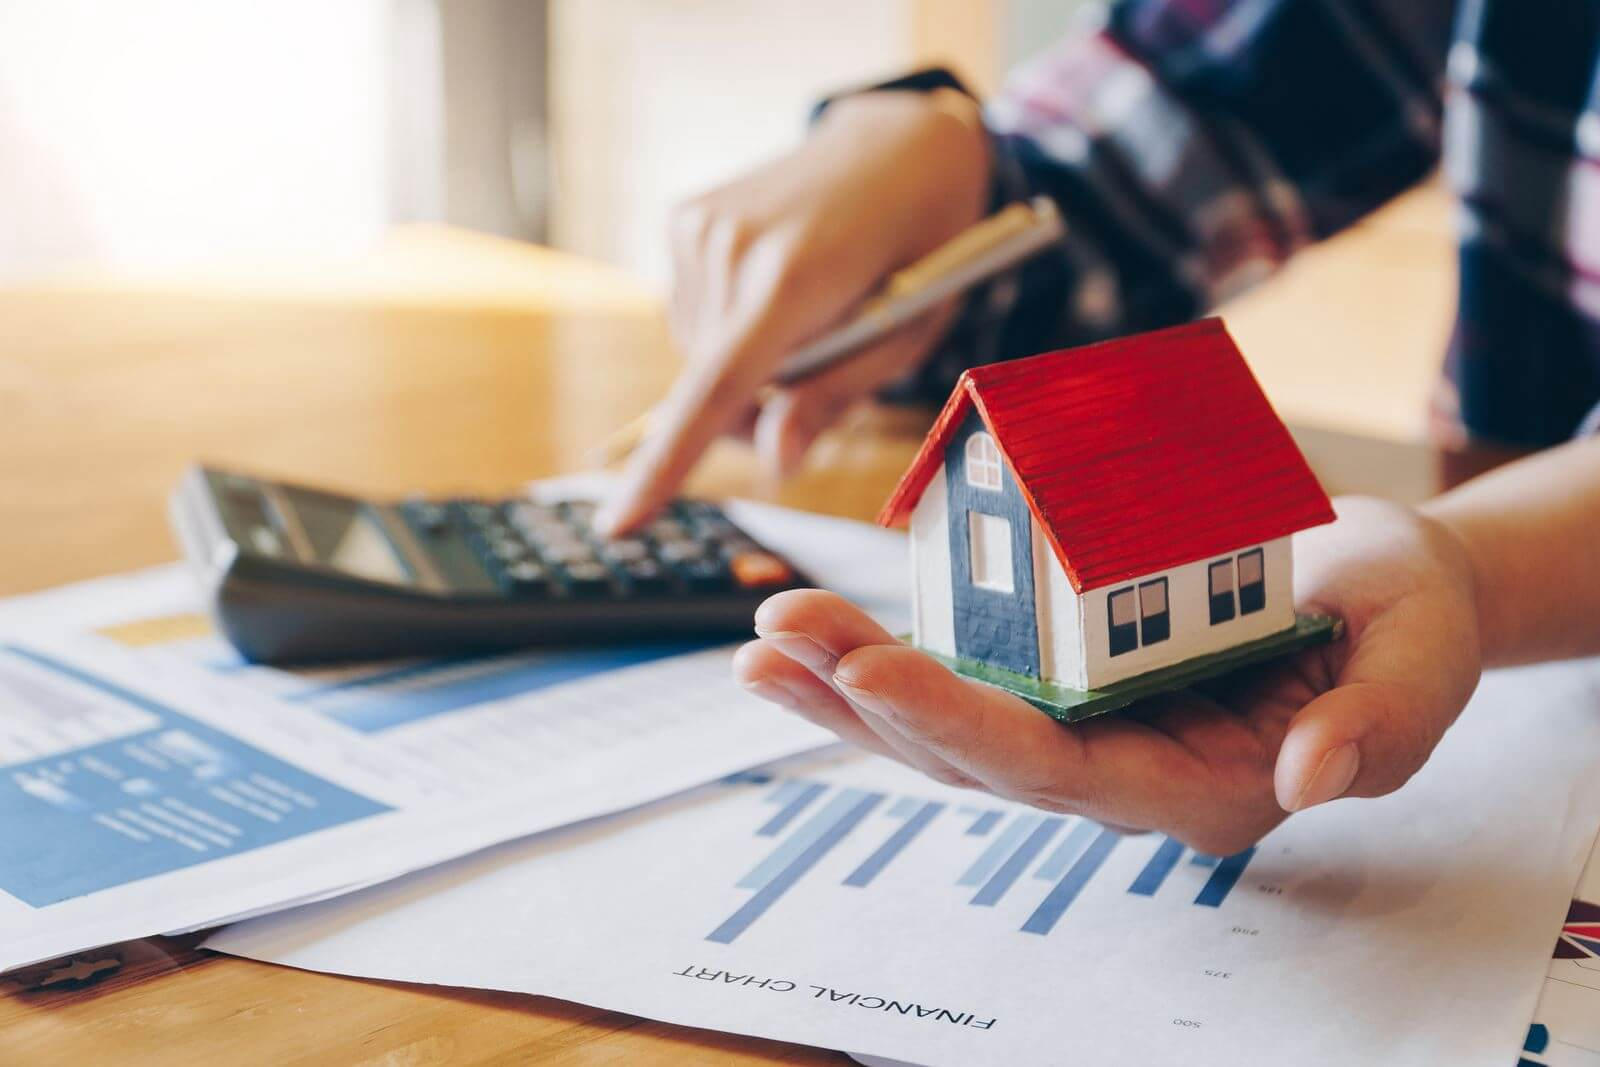 Holding house and using calculator to calculate the benefits of real estate investing